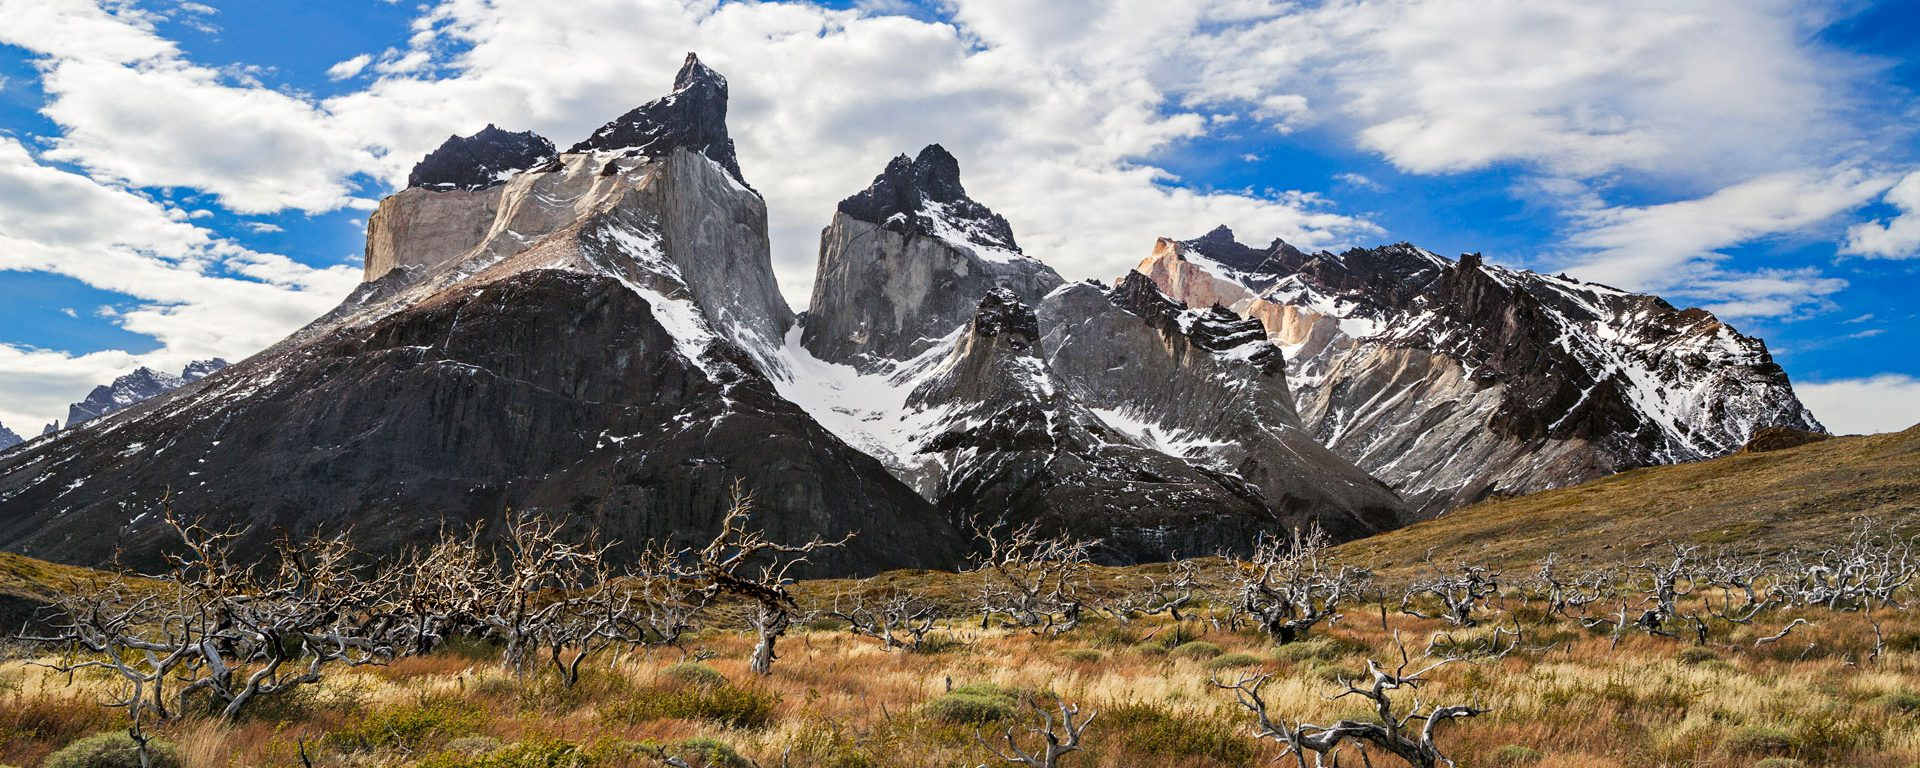 The peaks of Cuernos del Paine, Torres del Paine, Chile